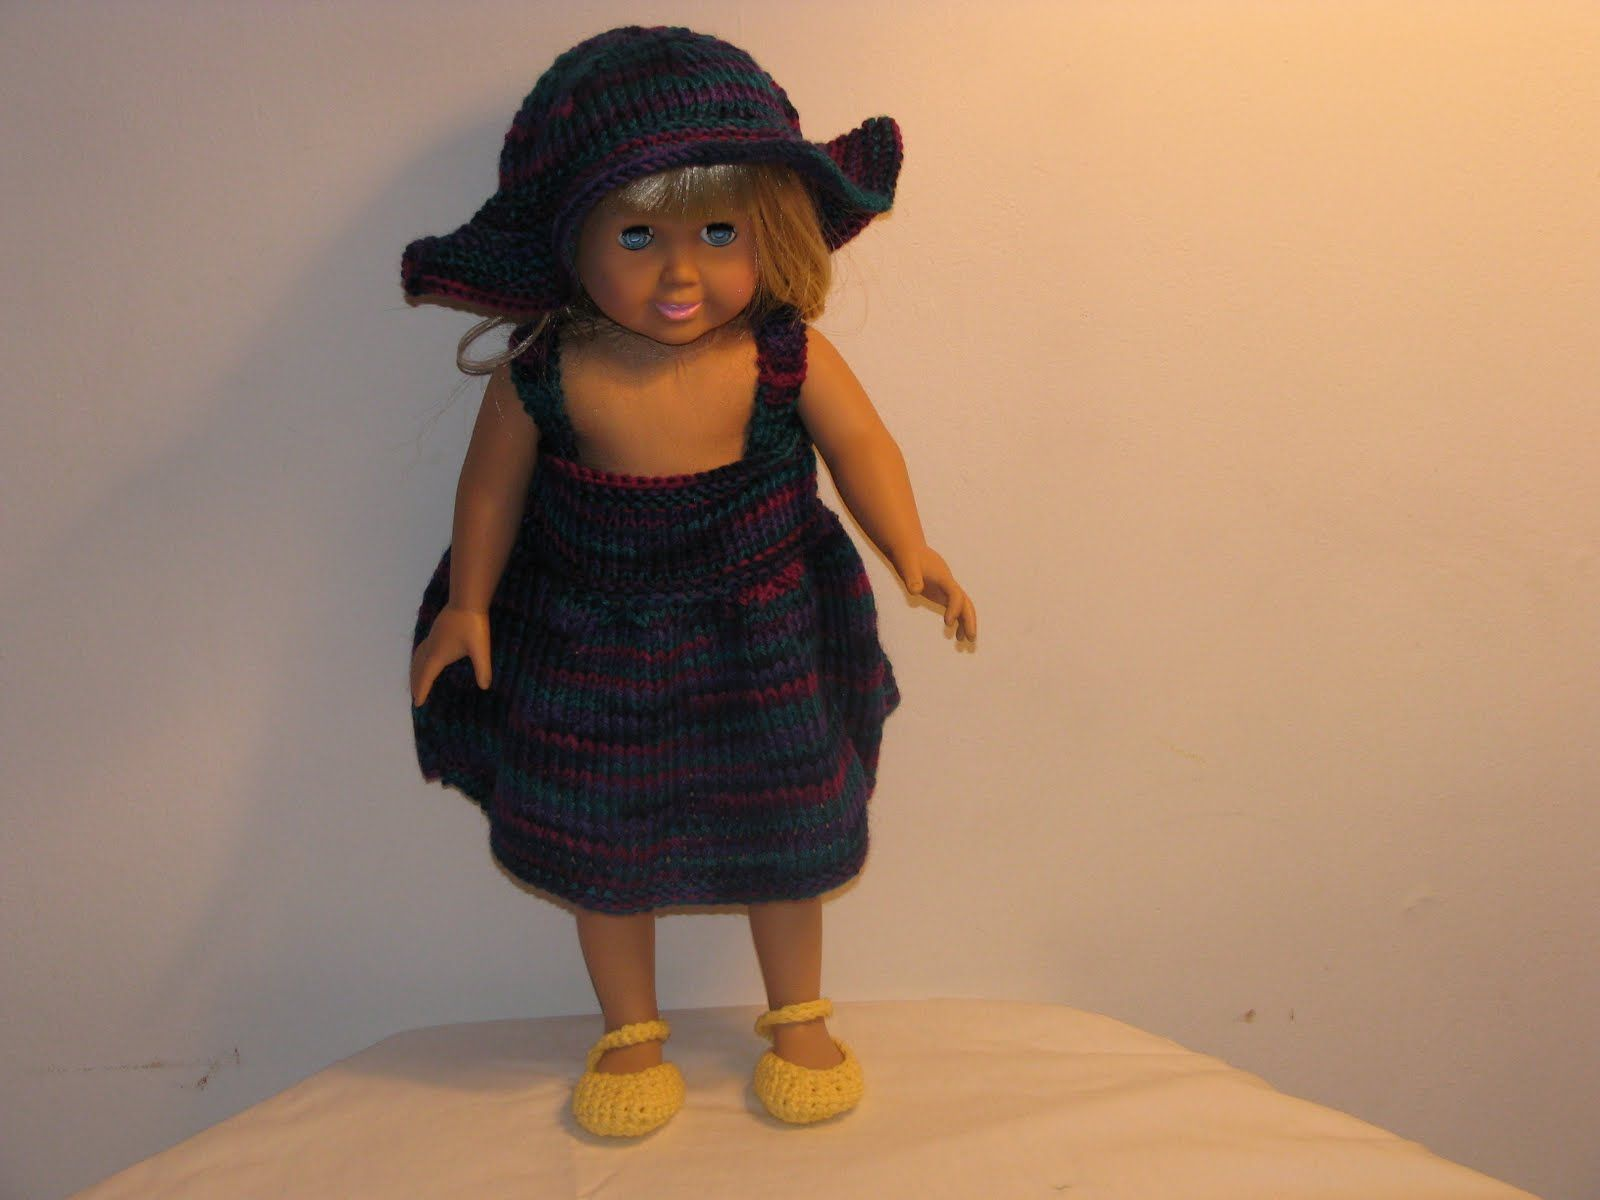 Free knitting patterns for american girl doll clothes yahoo free knitting patterns for american girl doll clothes yahoo image search results bankloansurffo Choice Image